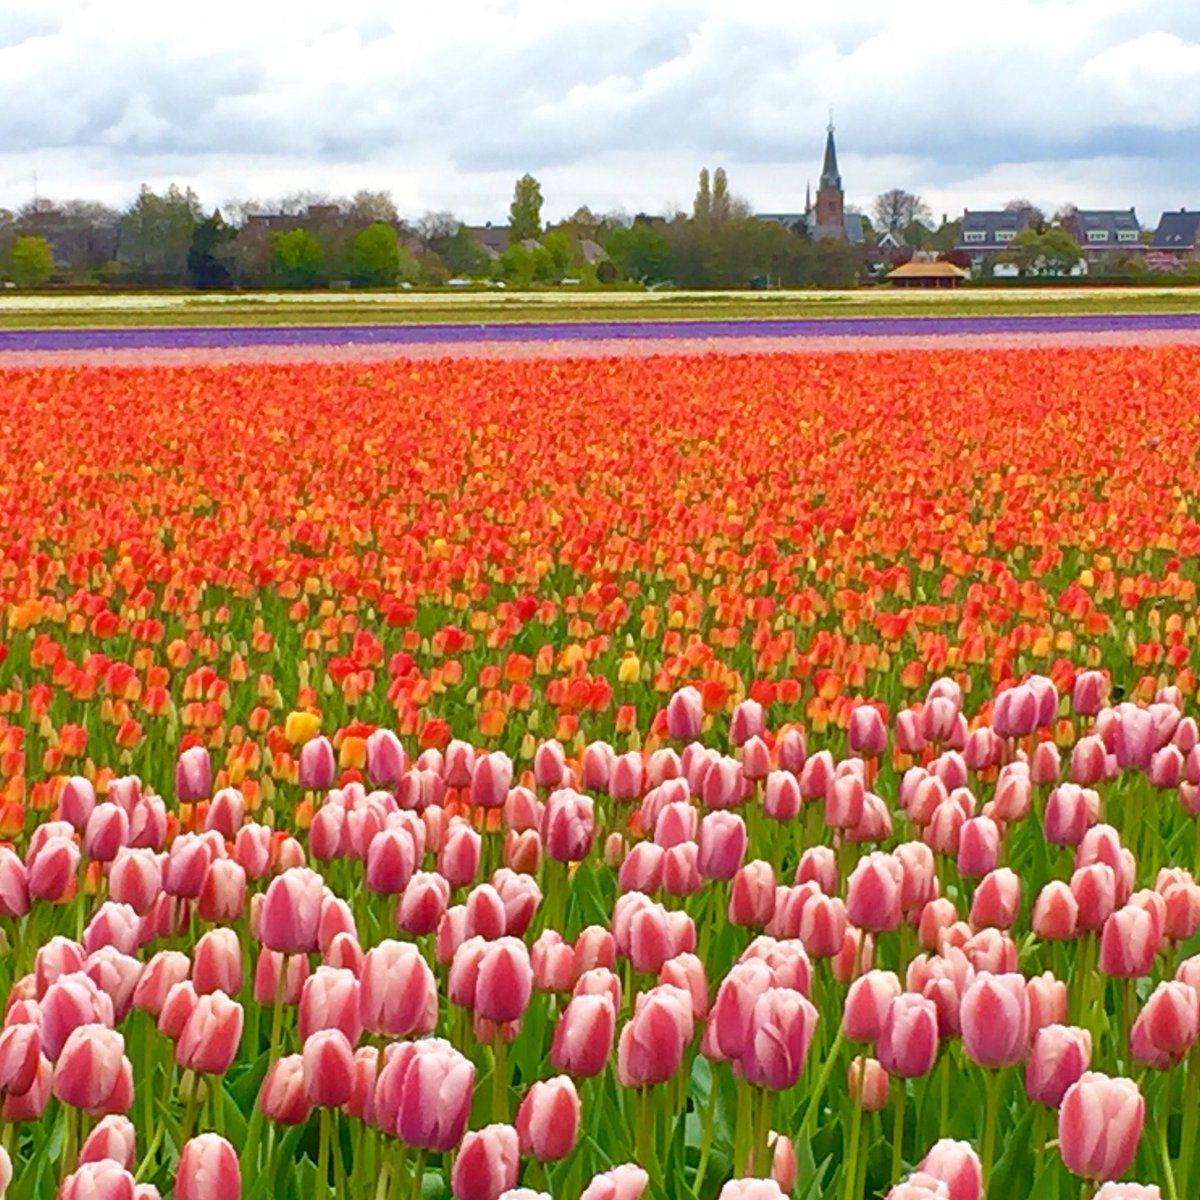 Driving around the tulip fields southwest of #Amsterdam this afternoon. They never fail to impress!  <br>http://pic.twitter.com/hFJr3IAkAN